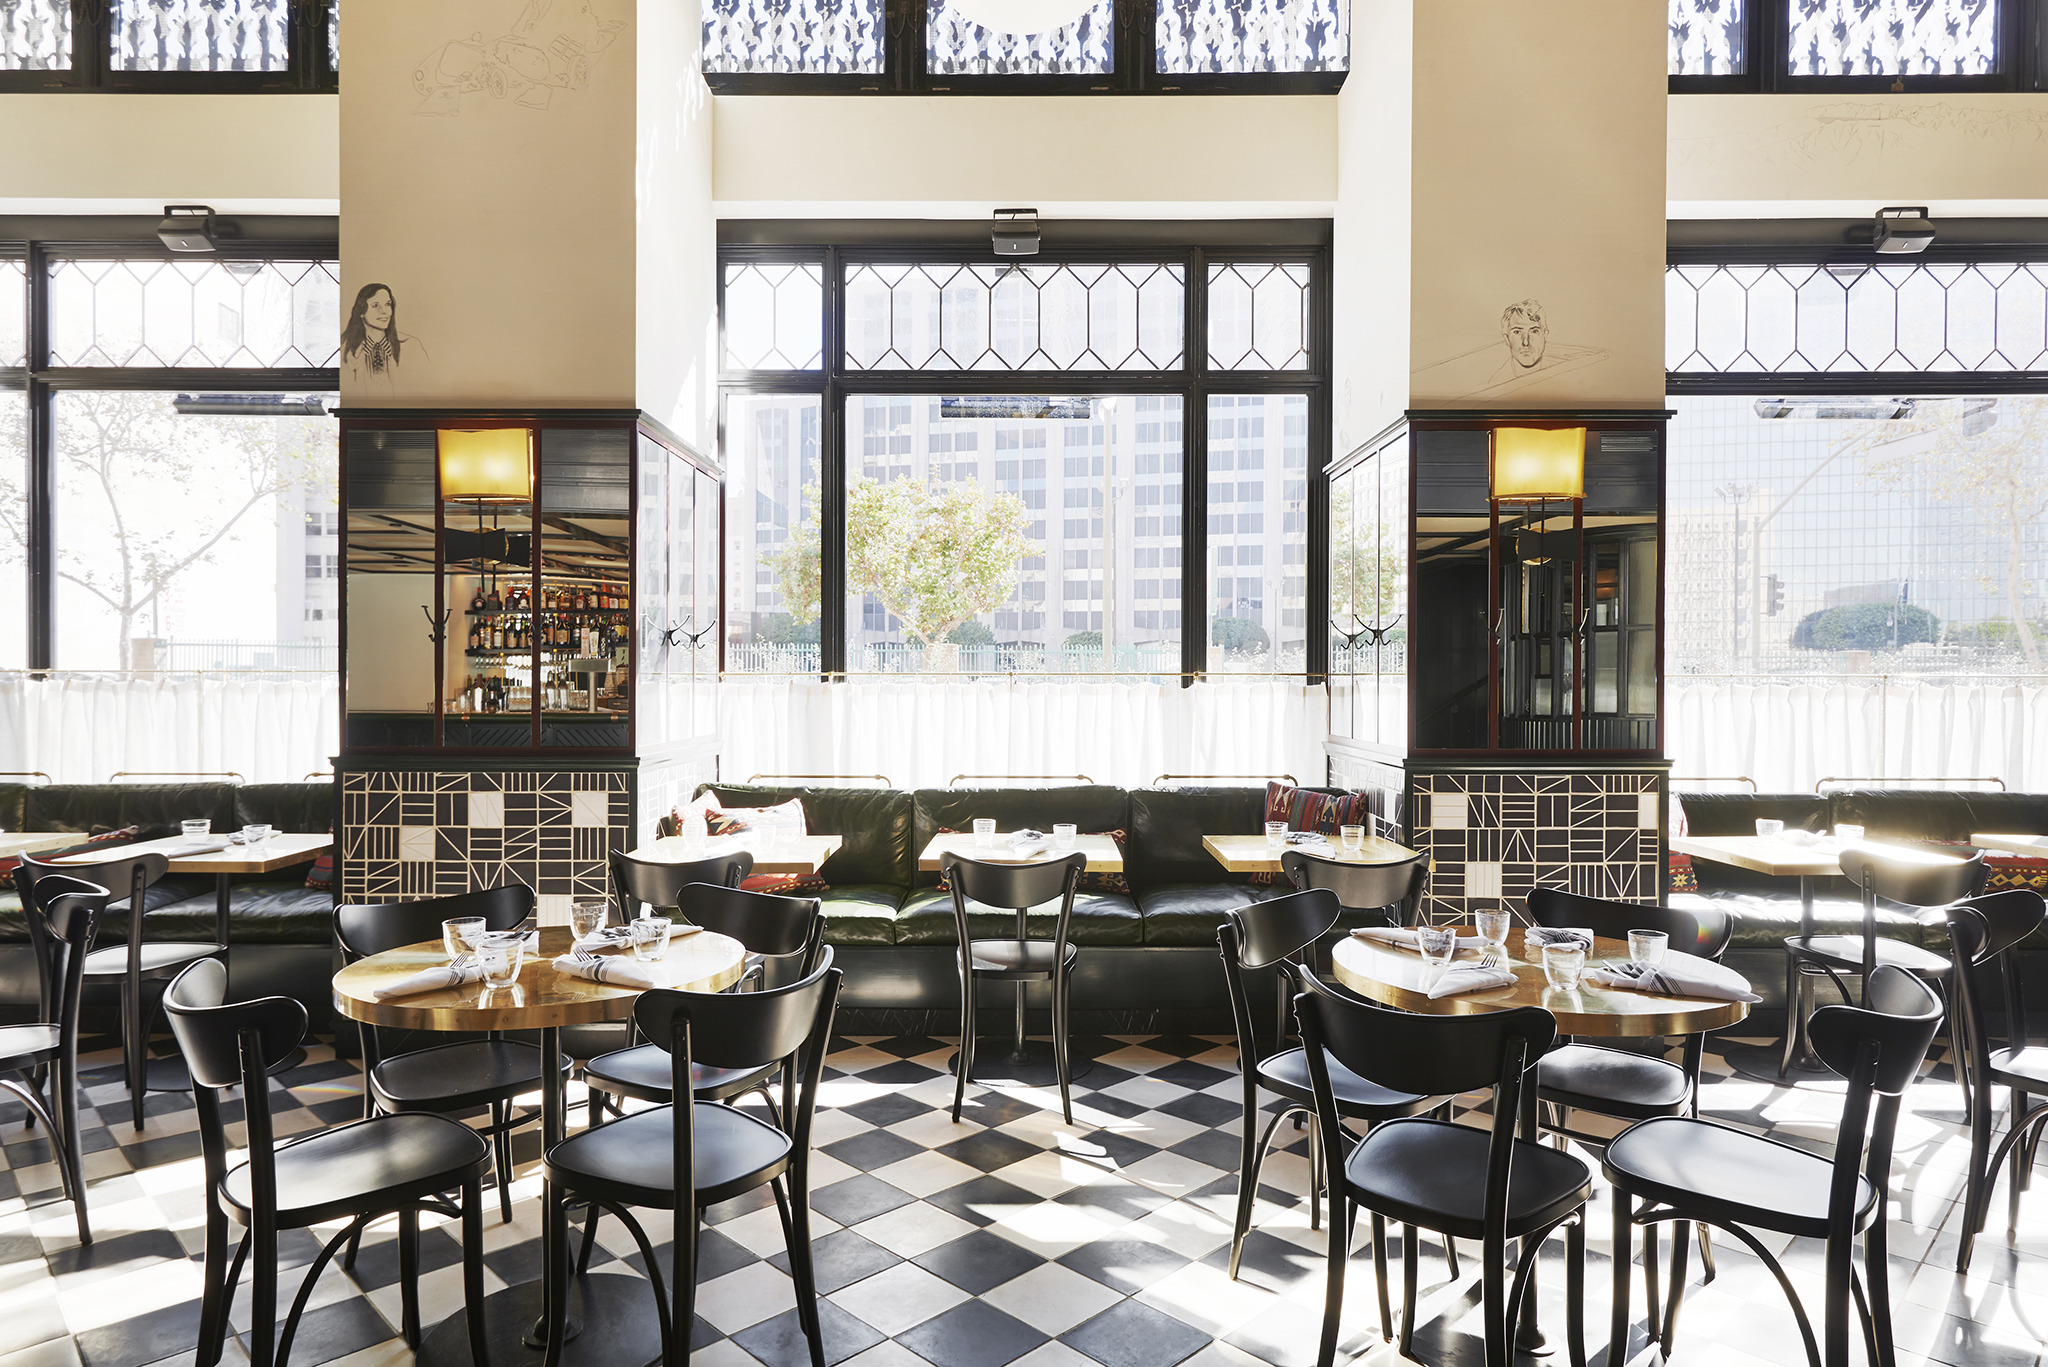 Best hotel brunches